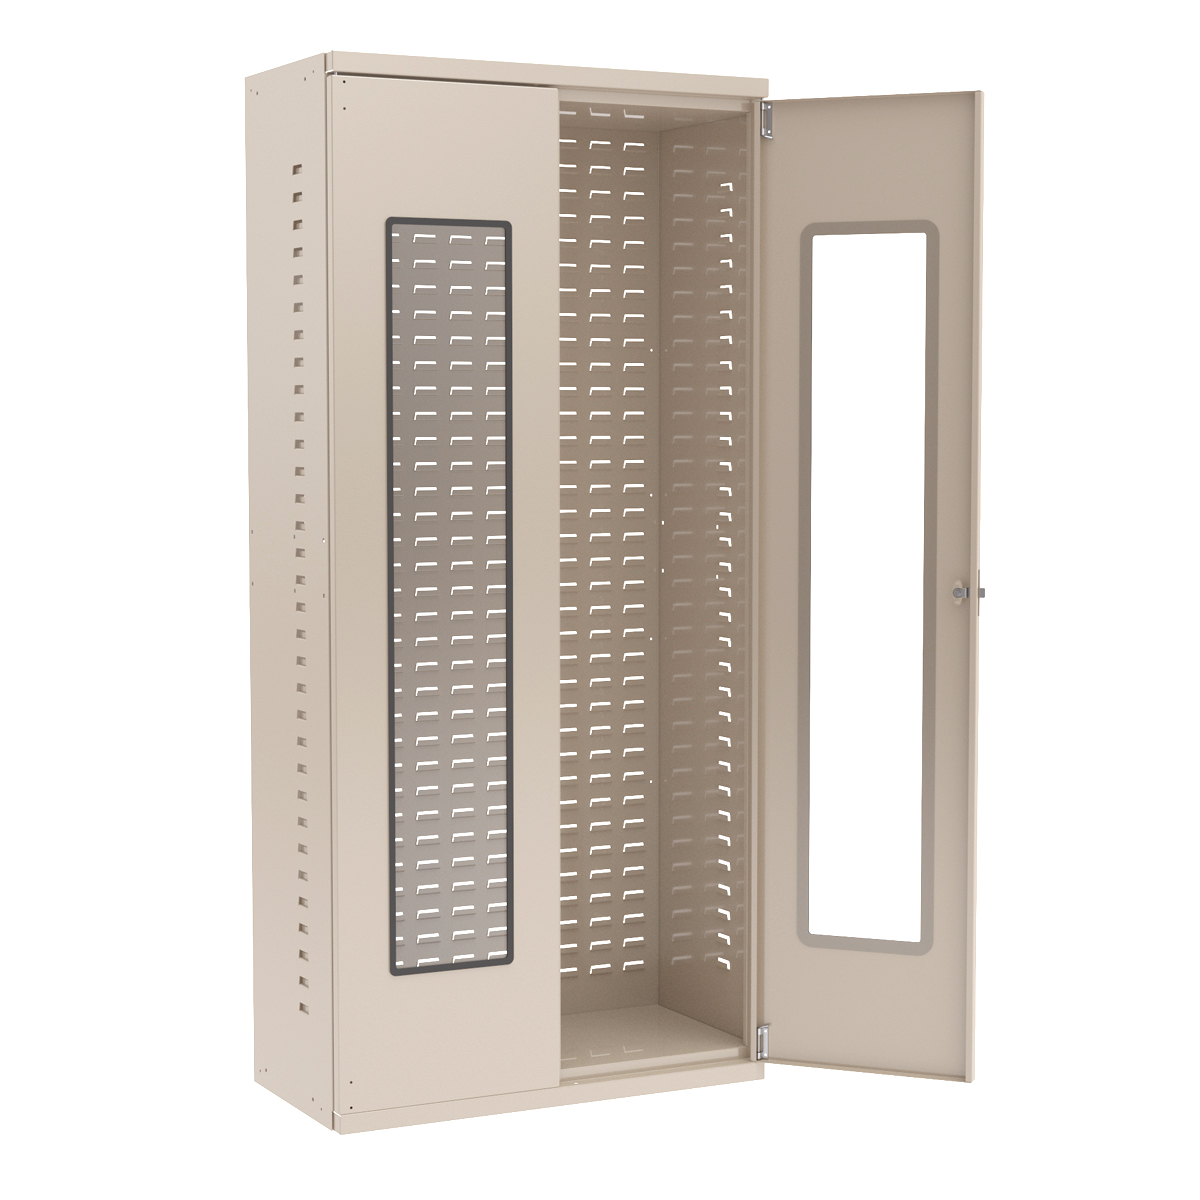 Quick View Bin Cabinet, 36x18x78, No Bins, Beige (AC3618QV).  This item sold in carton quantities of 1.